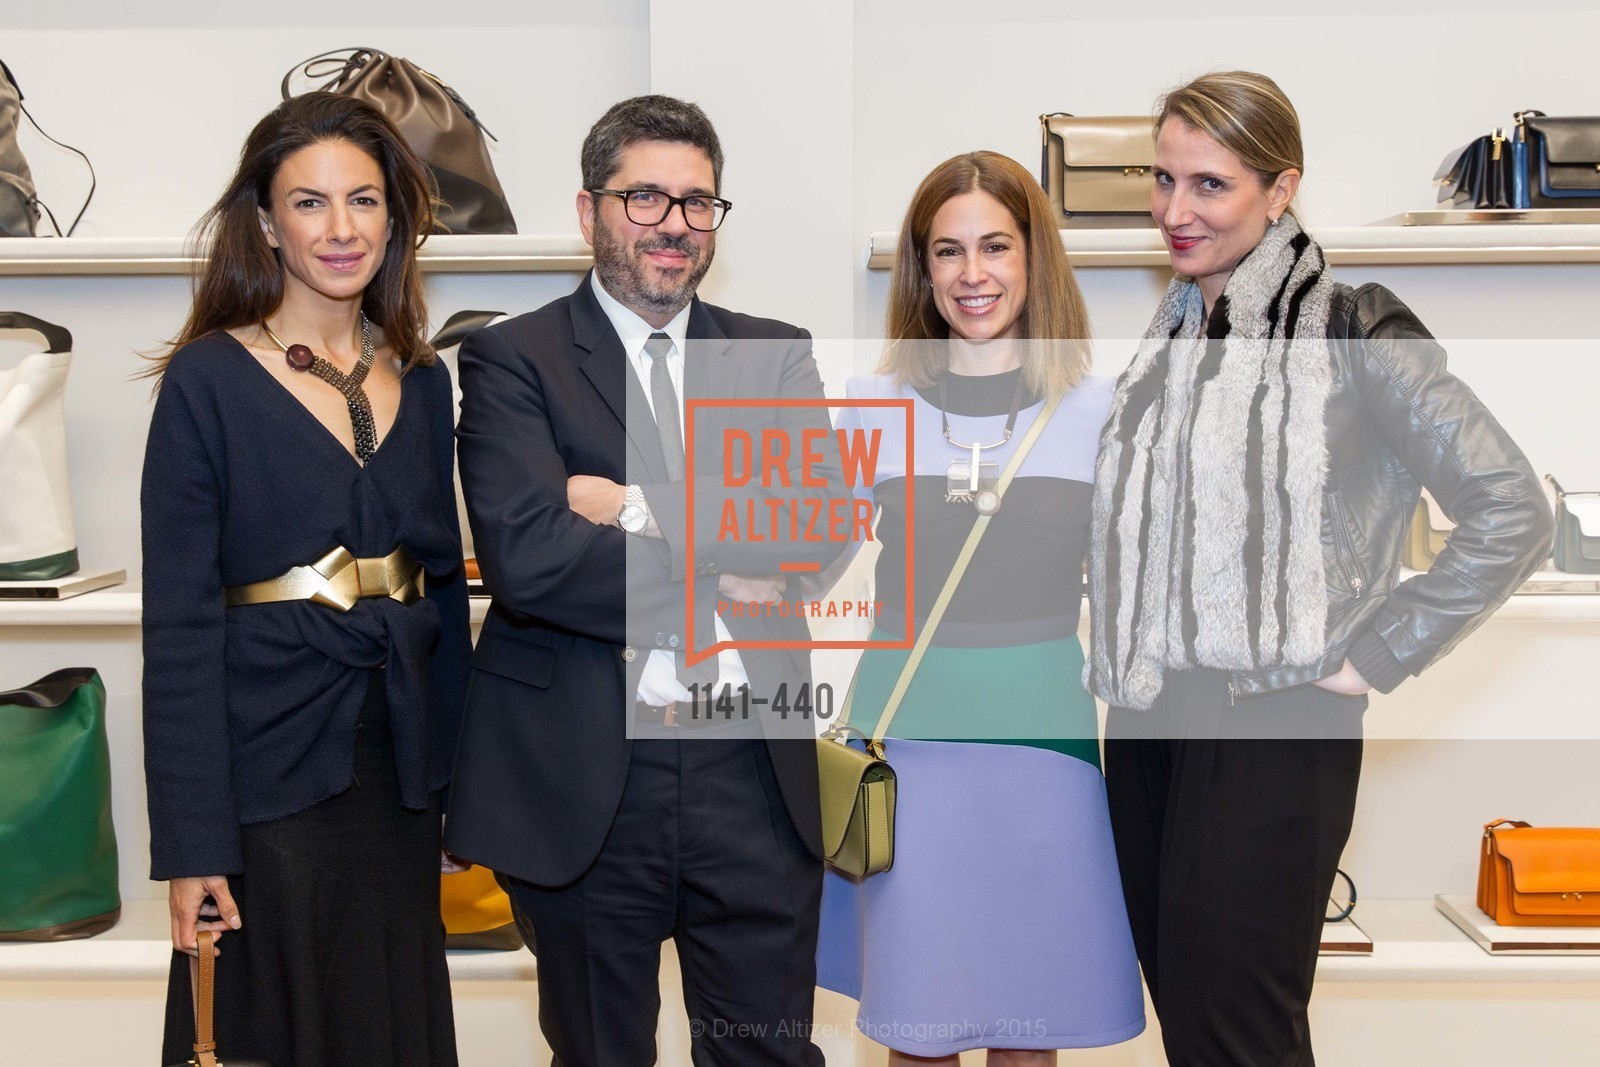 Allison Pincus, Andrea Baldo, Sabrina Buell, Andrea Baldo, W Magazine and BAMPFA Celebrate the Opening of the Marni San Francisco Boutique with co-hosts Sabrina Buell and Alison Pincus, Marni San Francisco. 77 Maiden Lane, November 4th, 2015,Drew Altizer, Drew Altizer Photography, full-service agency, private events, San Francisco photographer, photographer california